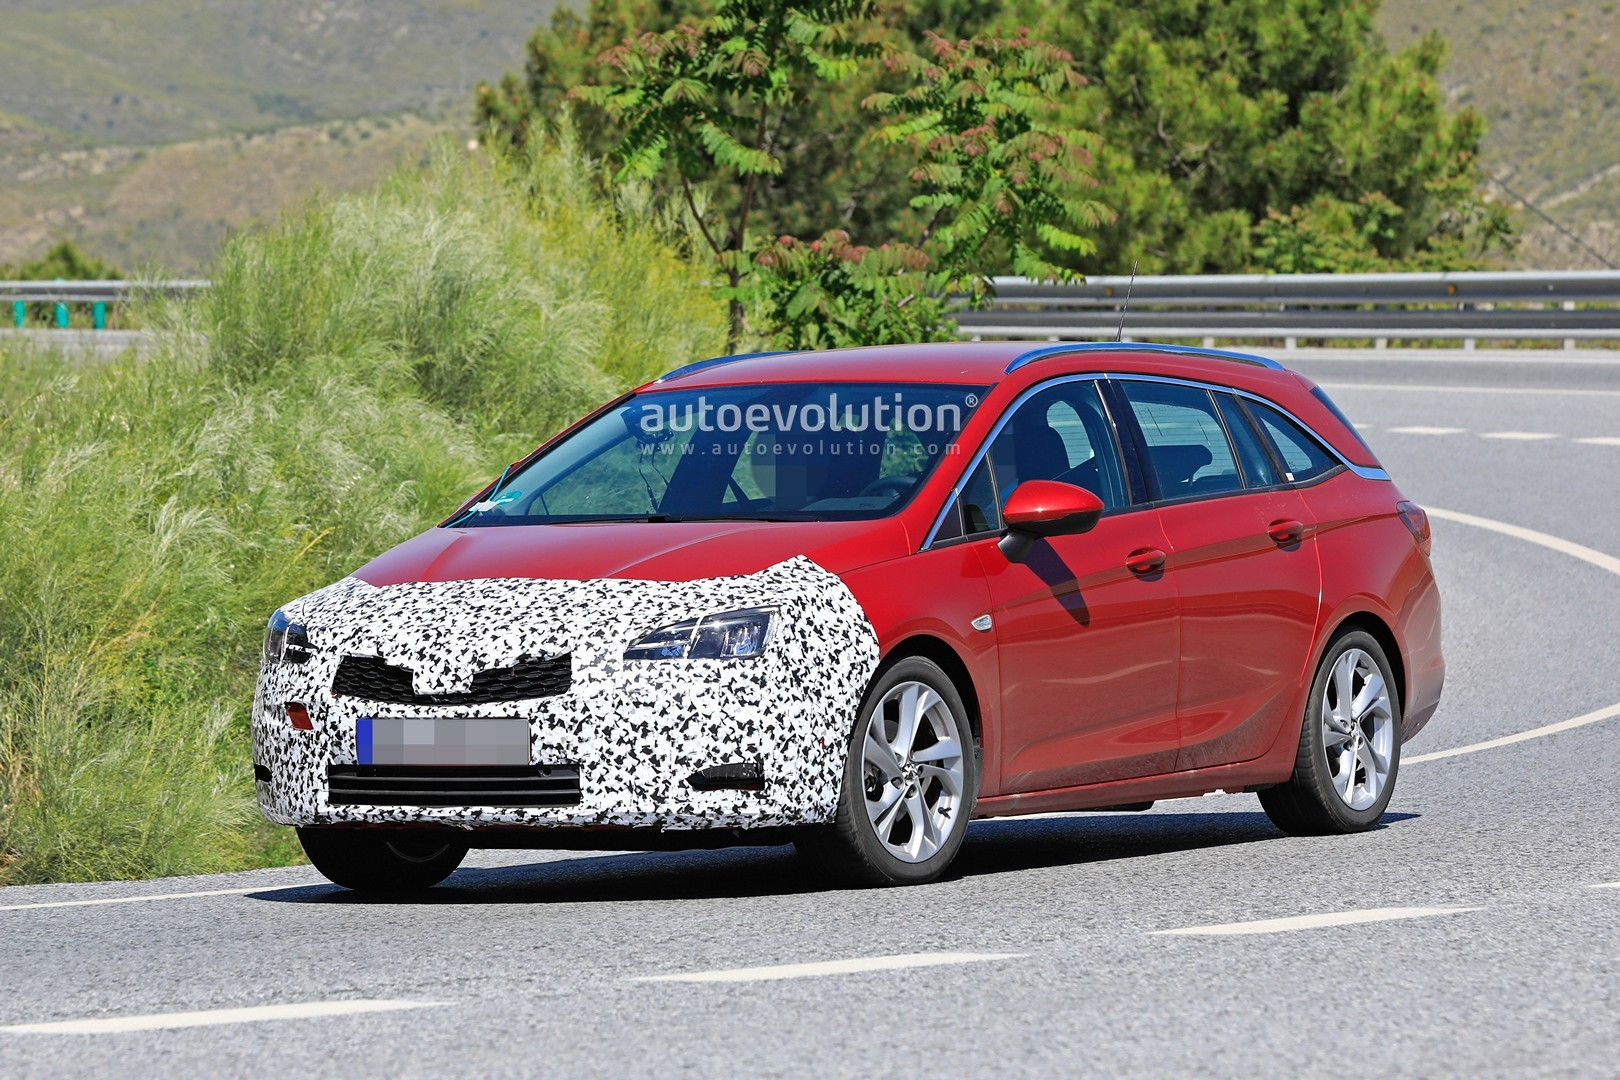 2020 opel astra wagon spied with mild facelift getting